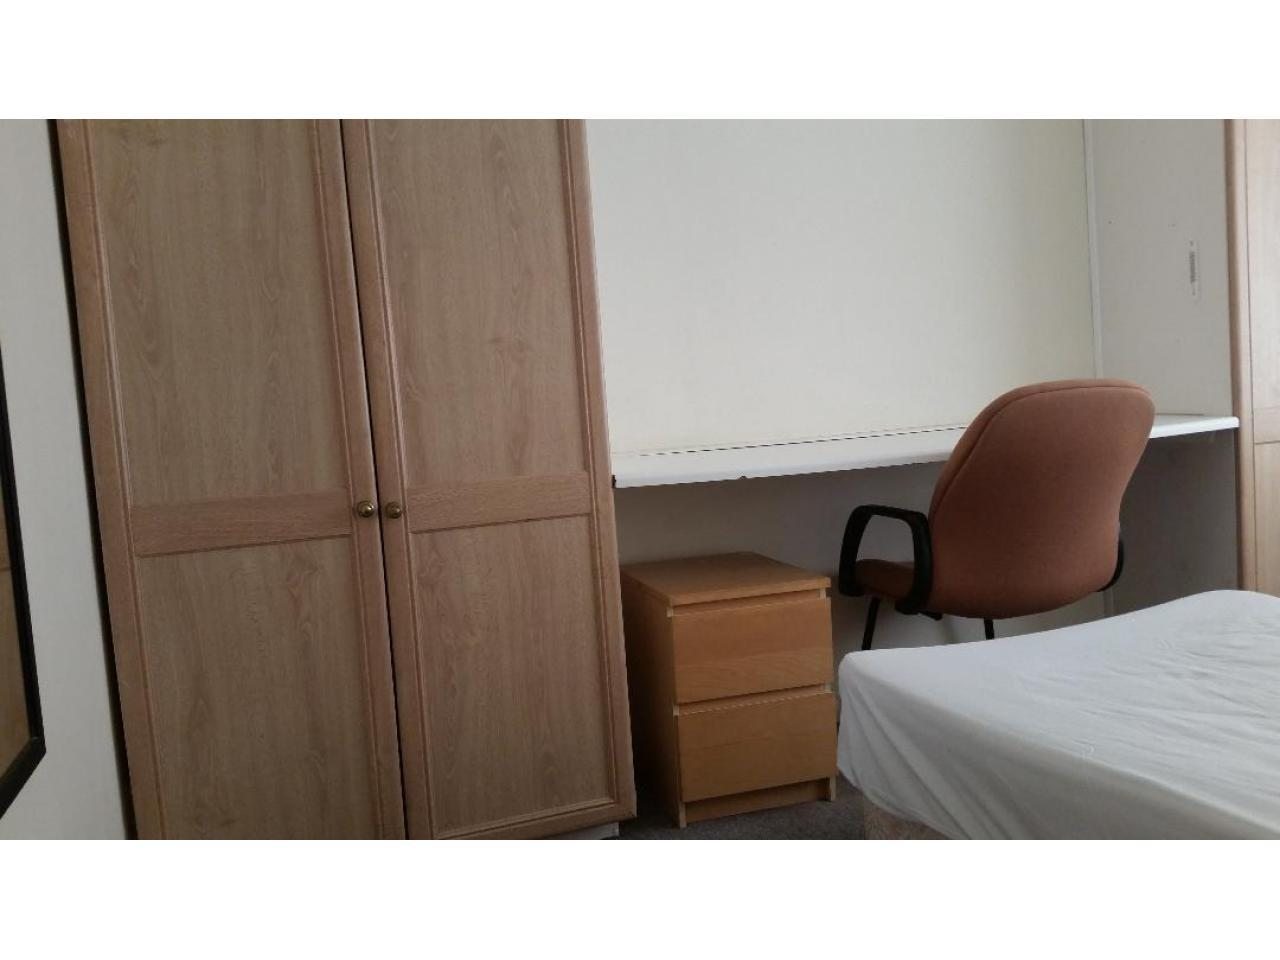 Сдаем  Double Room Hounslow  TW3 4AW £115 в неделю - 6